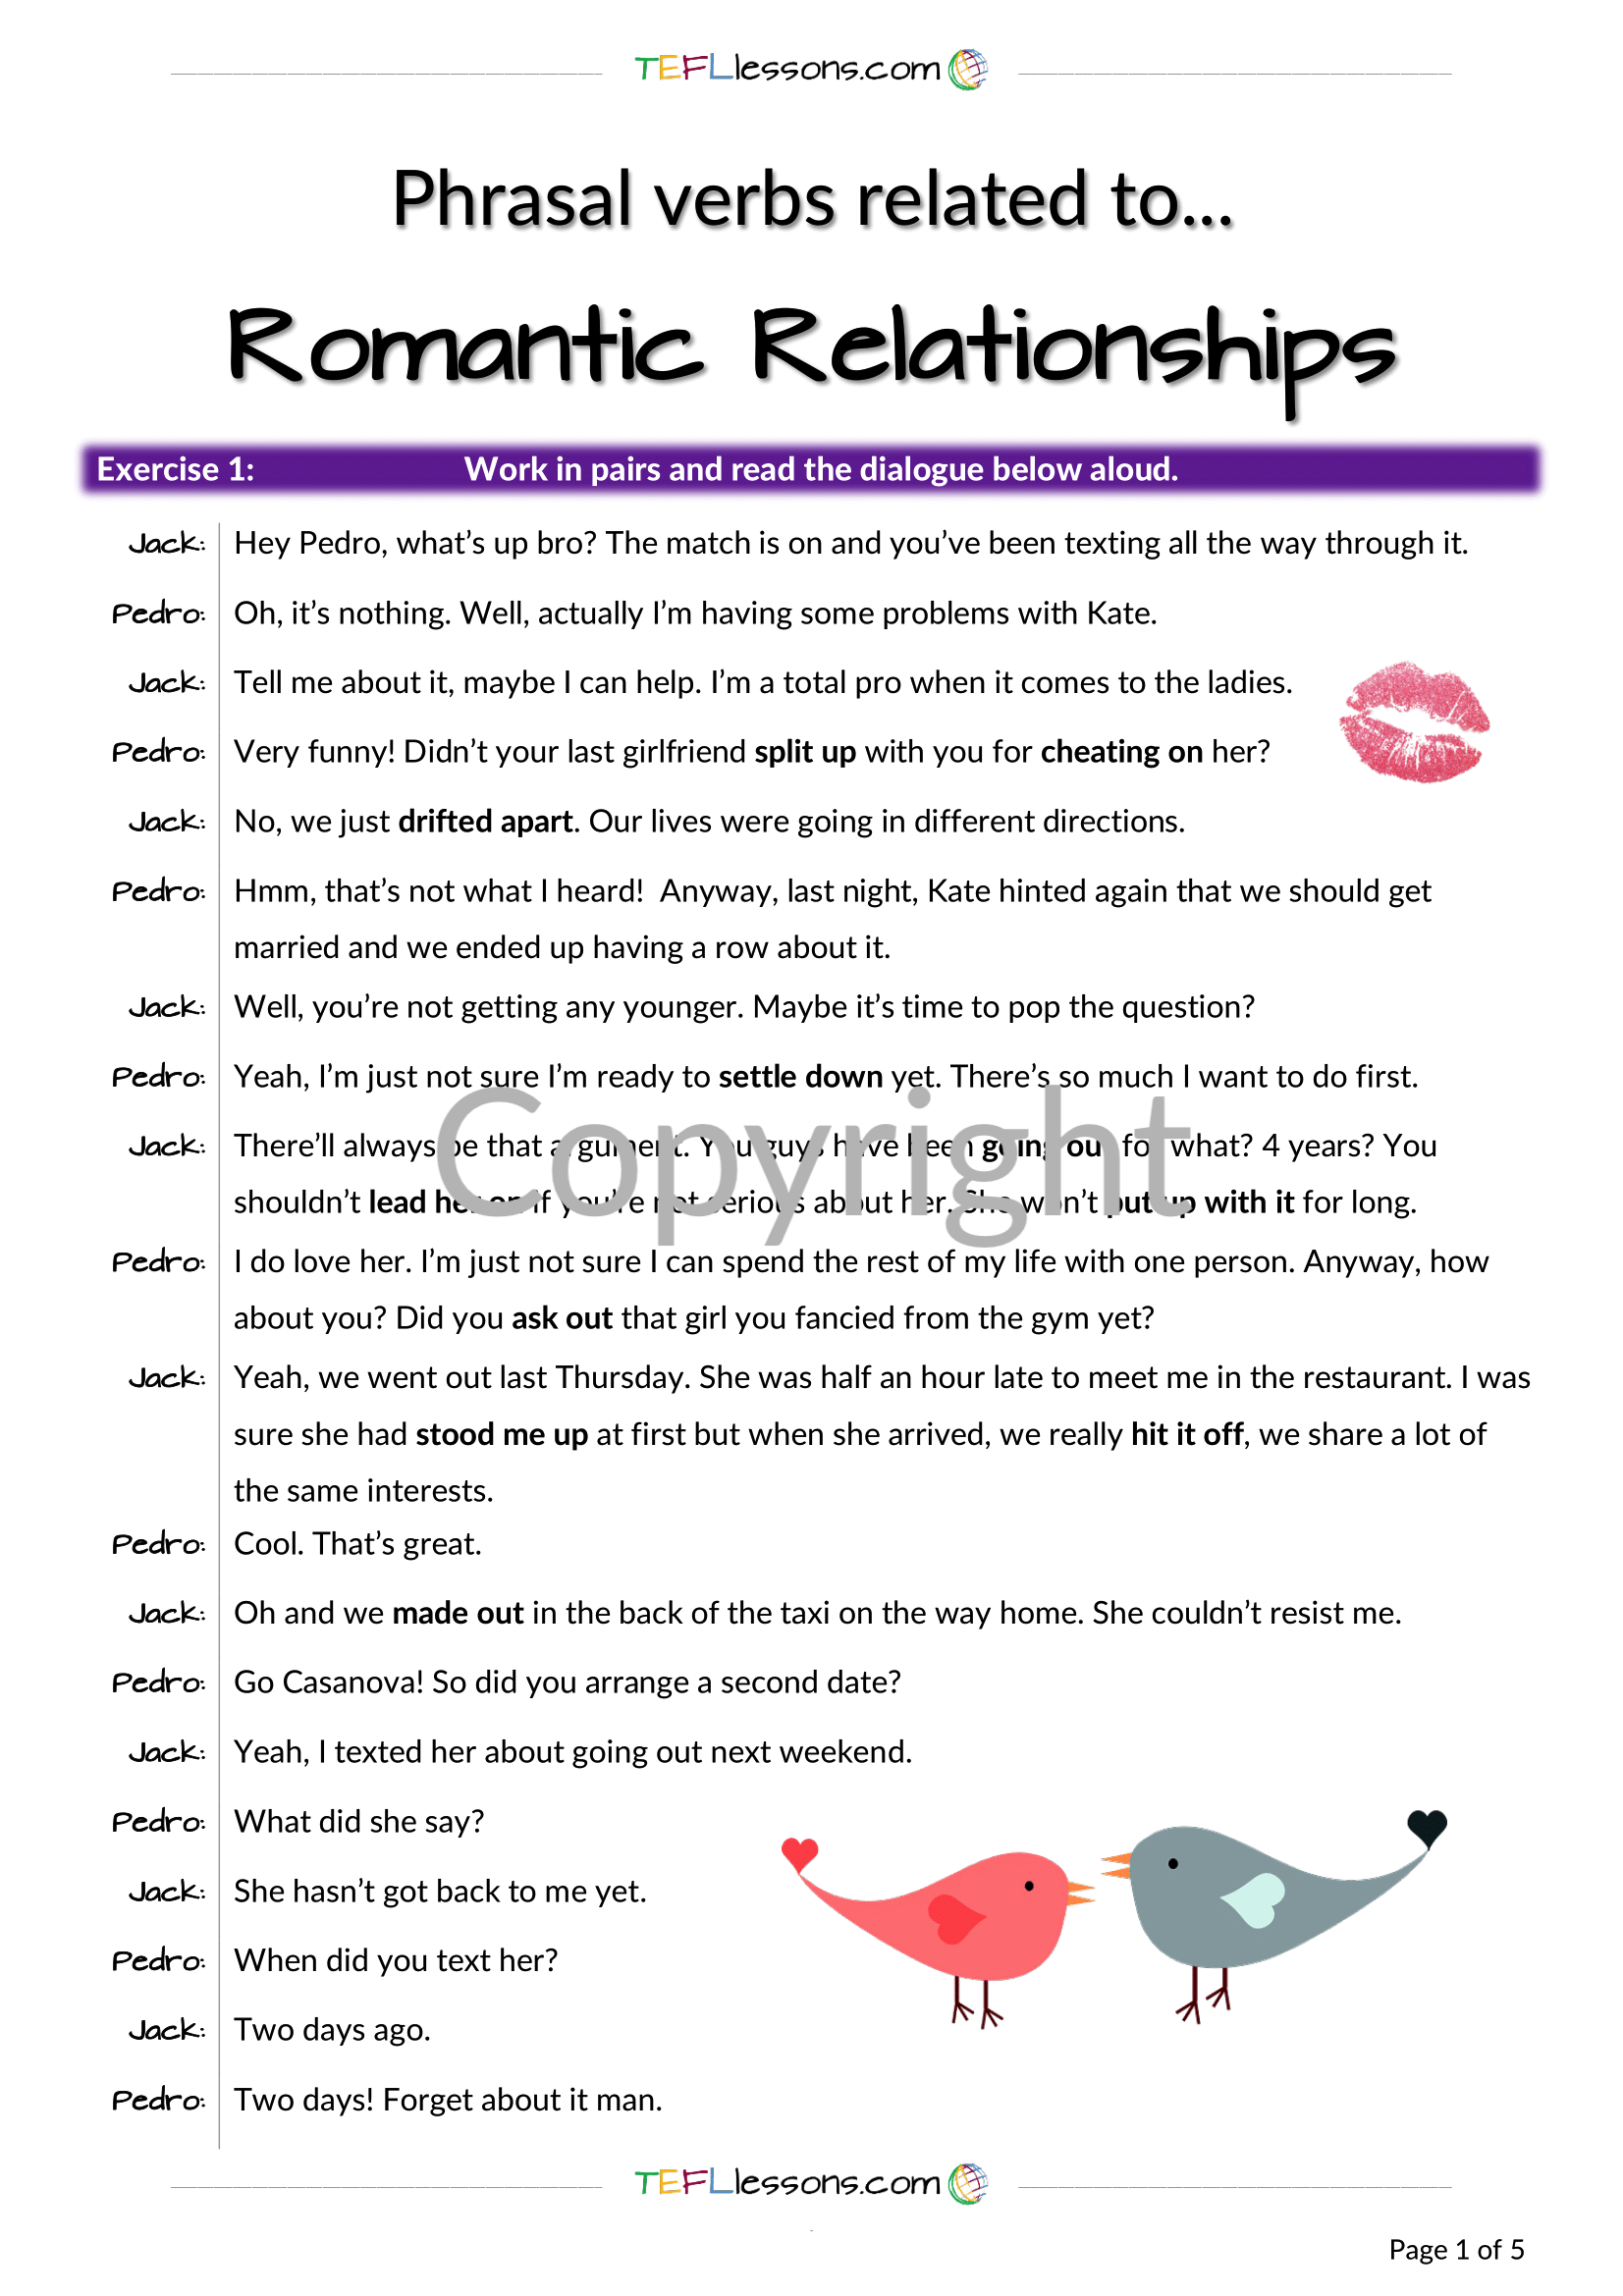 Relationships Phrasal Verbs Verbs Lessons Relationship Exercises Teacher Notes [ 2339 x 1653 Pixel ]